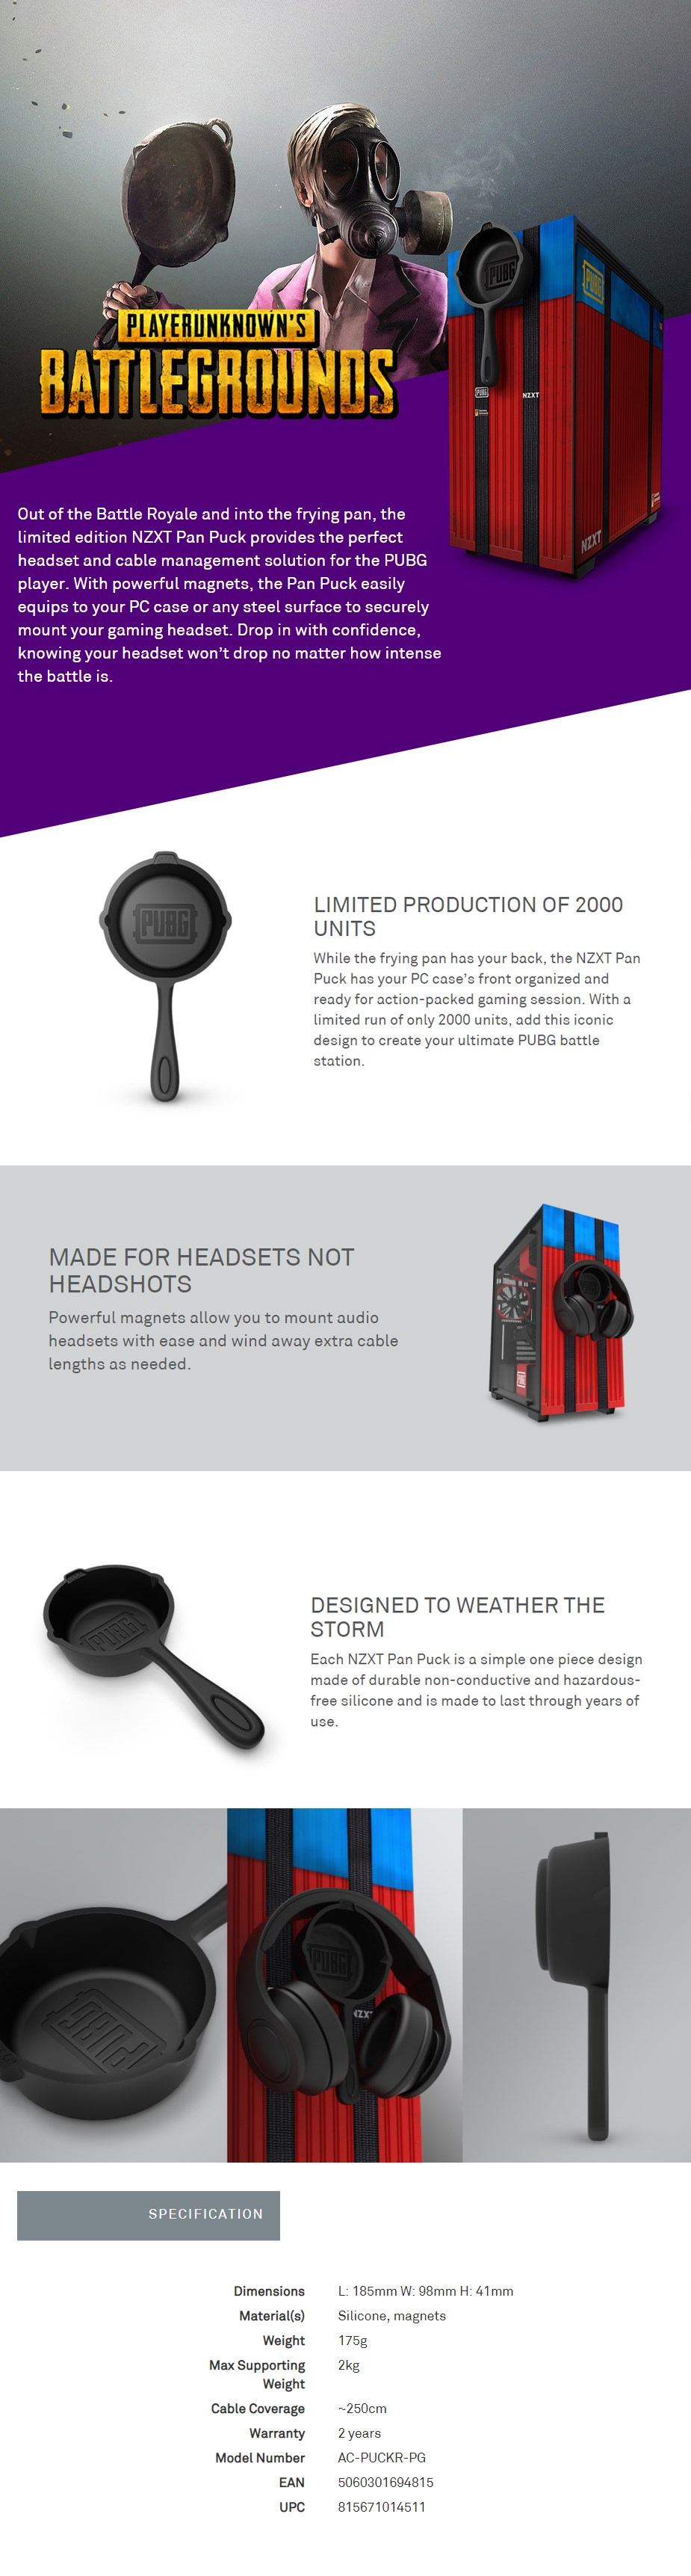 NZXT Pan Puck Cable Management & Headset-Mounting/Holder Solution - PUBG Edition - Desktop Overview 1